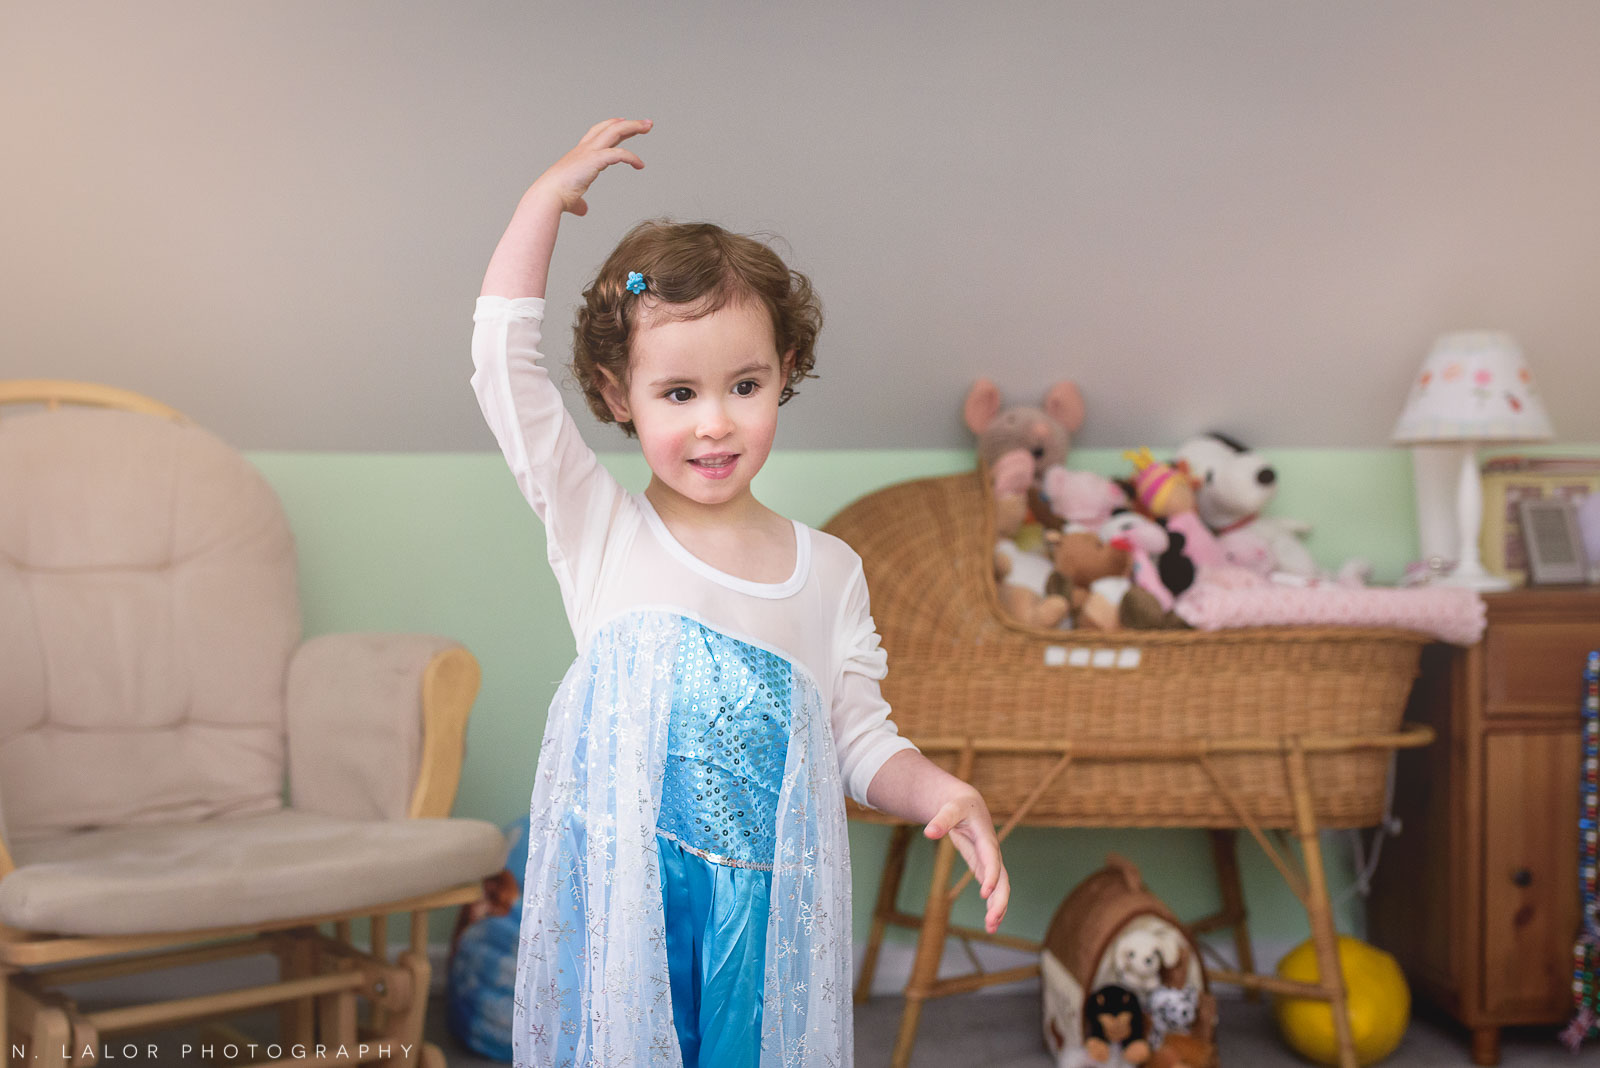 Dancing as Elsa from Frozen. Mini dress-up photo session by N. Lalor Photography.